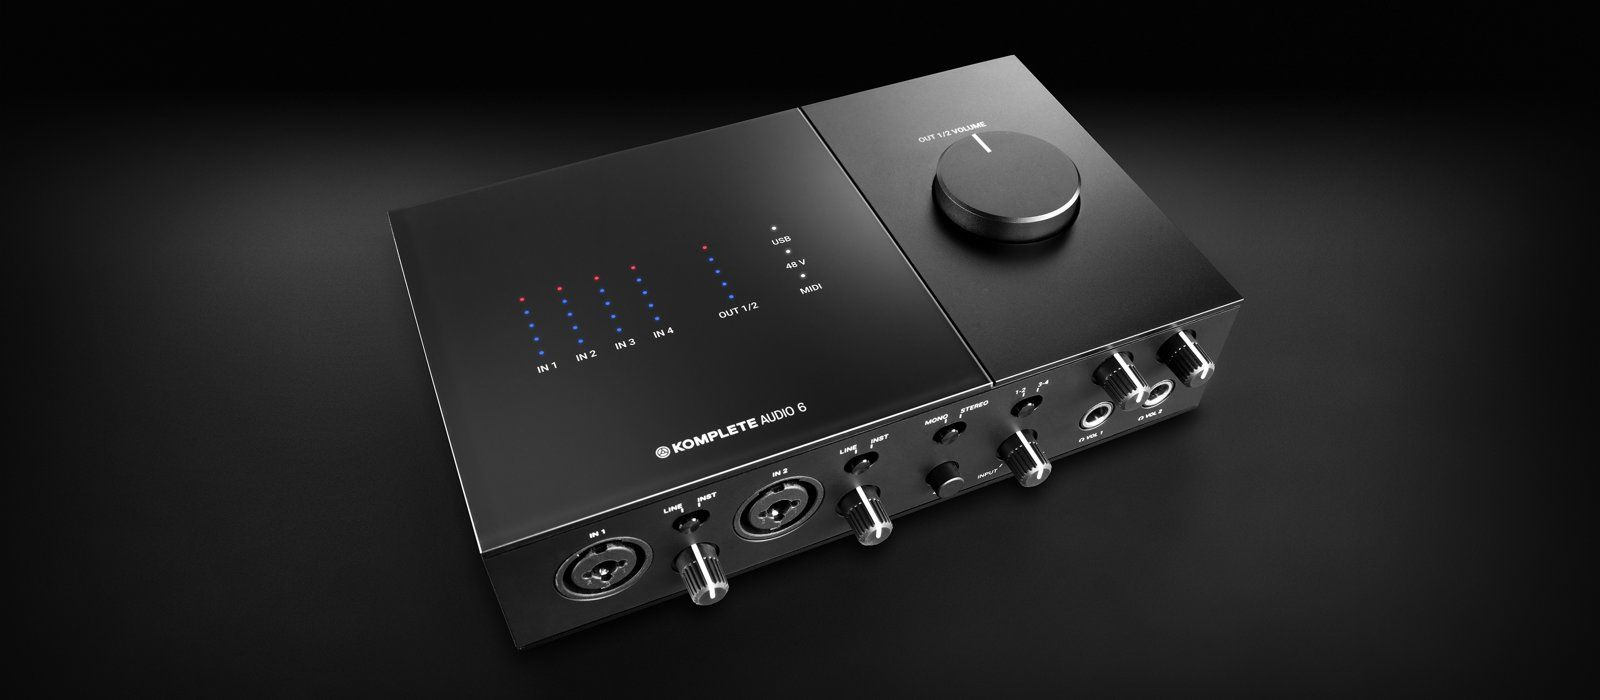 img-ce-gallery-komplete-audio-6-product-page-05-image-gallery-05_01-1039d2ac4bcfeaf68b9abe077f62e5ed-d